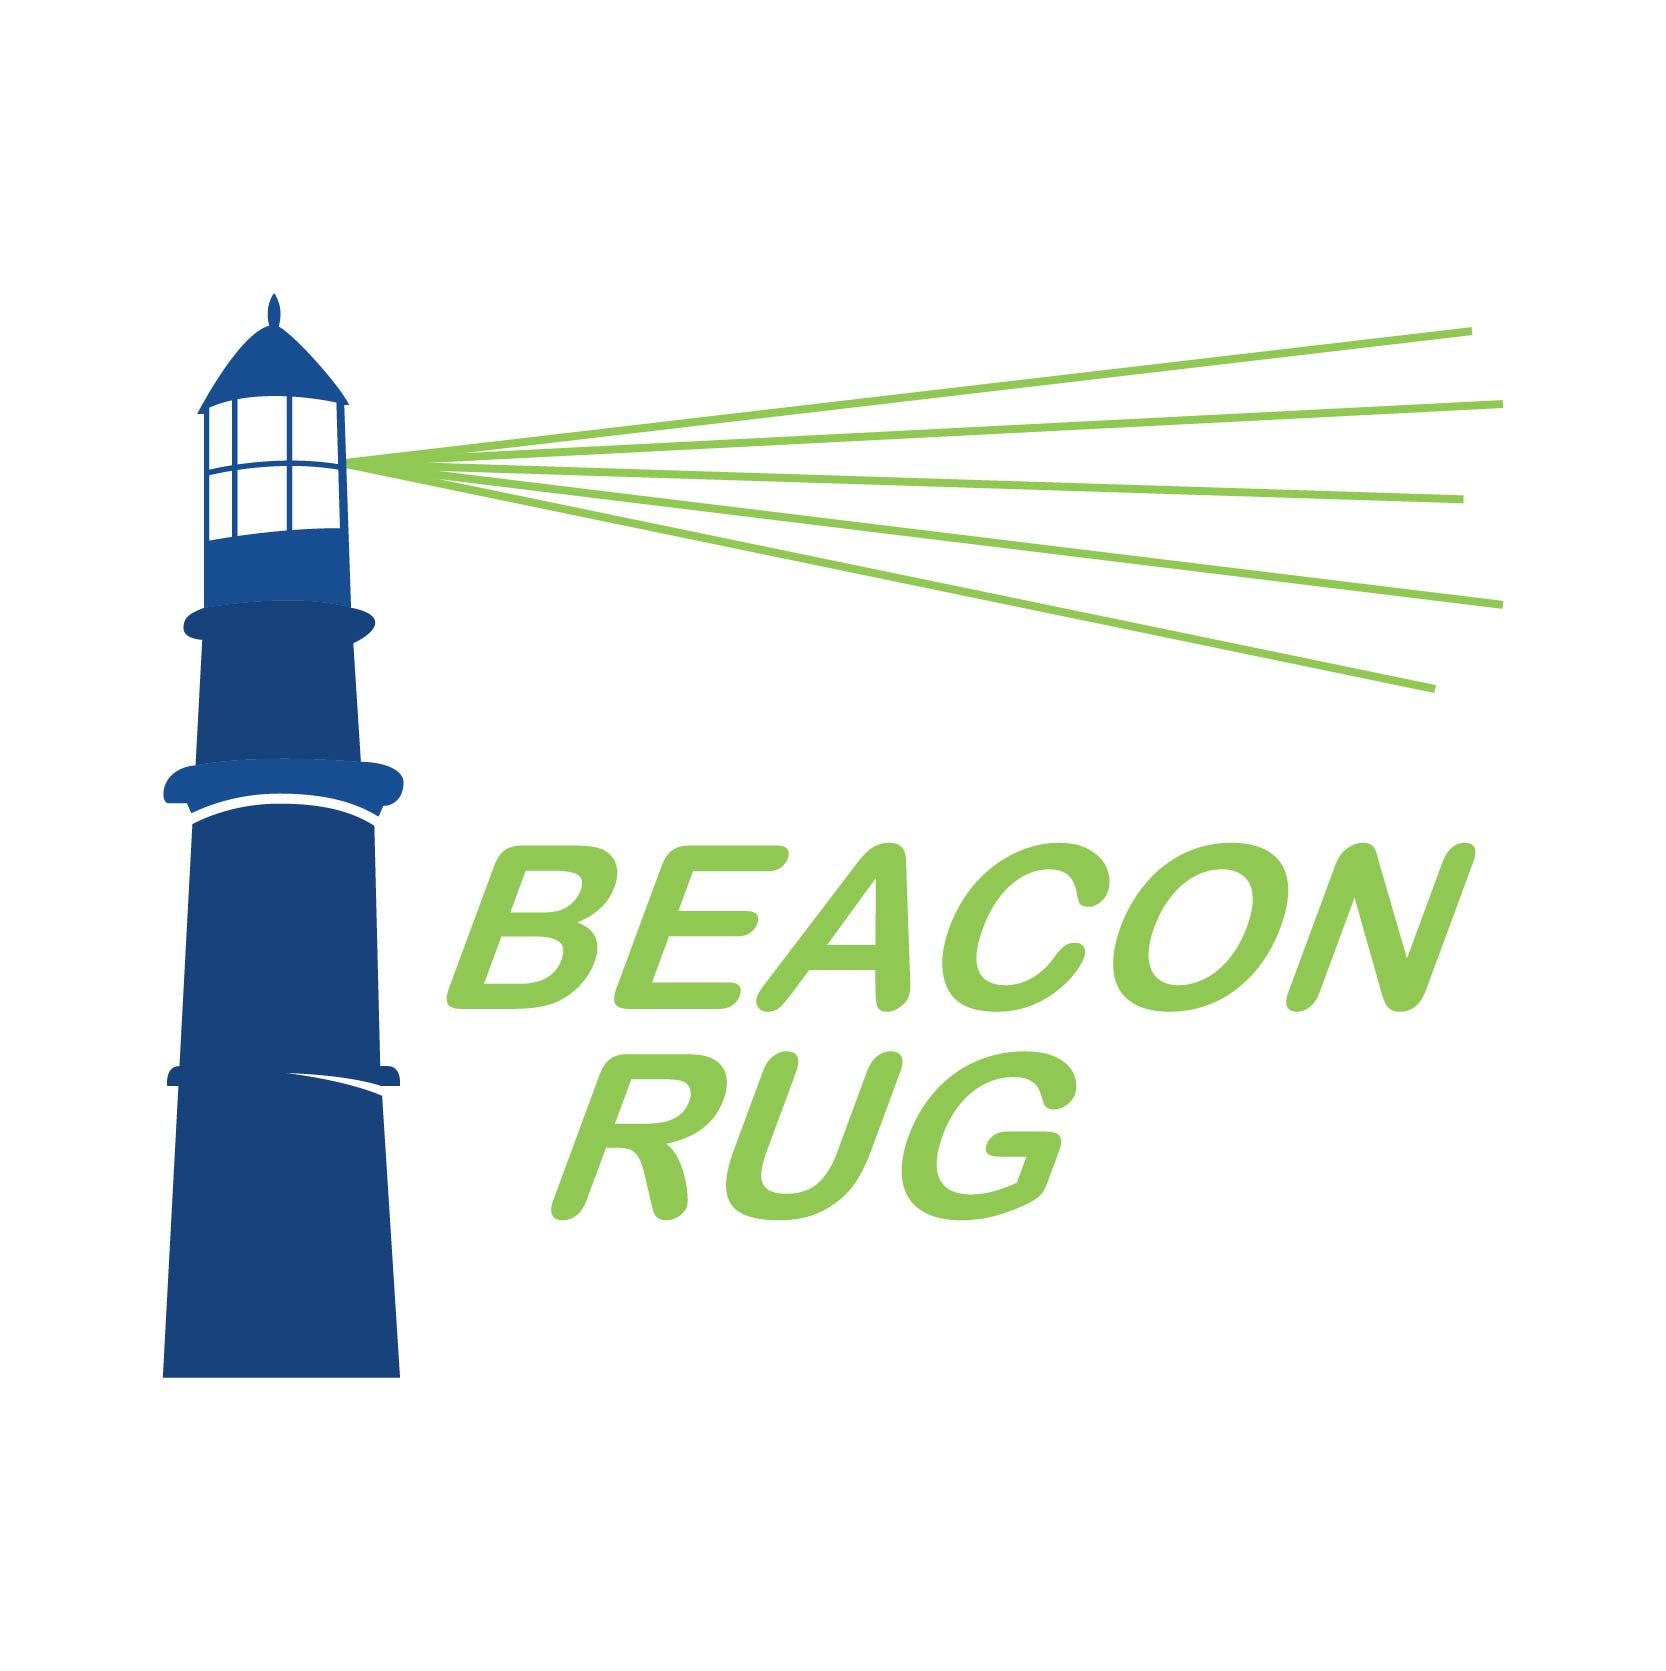 BEACON RUG the comedy